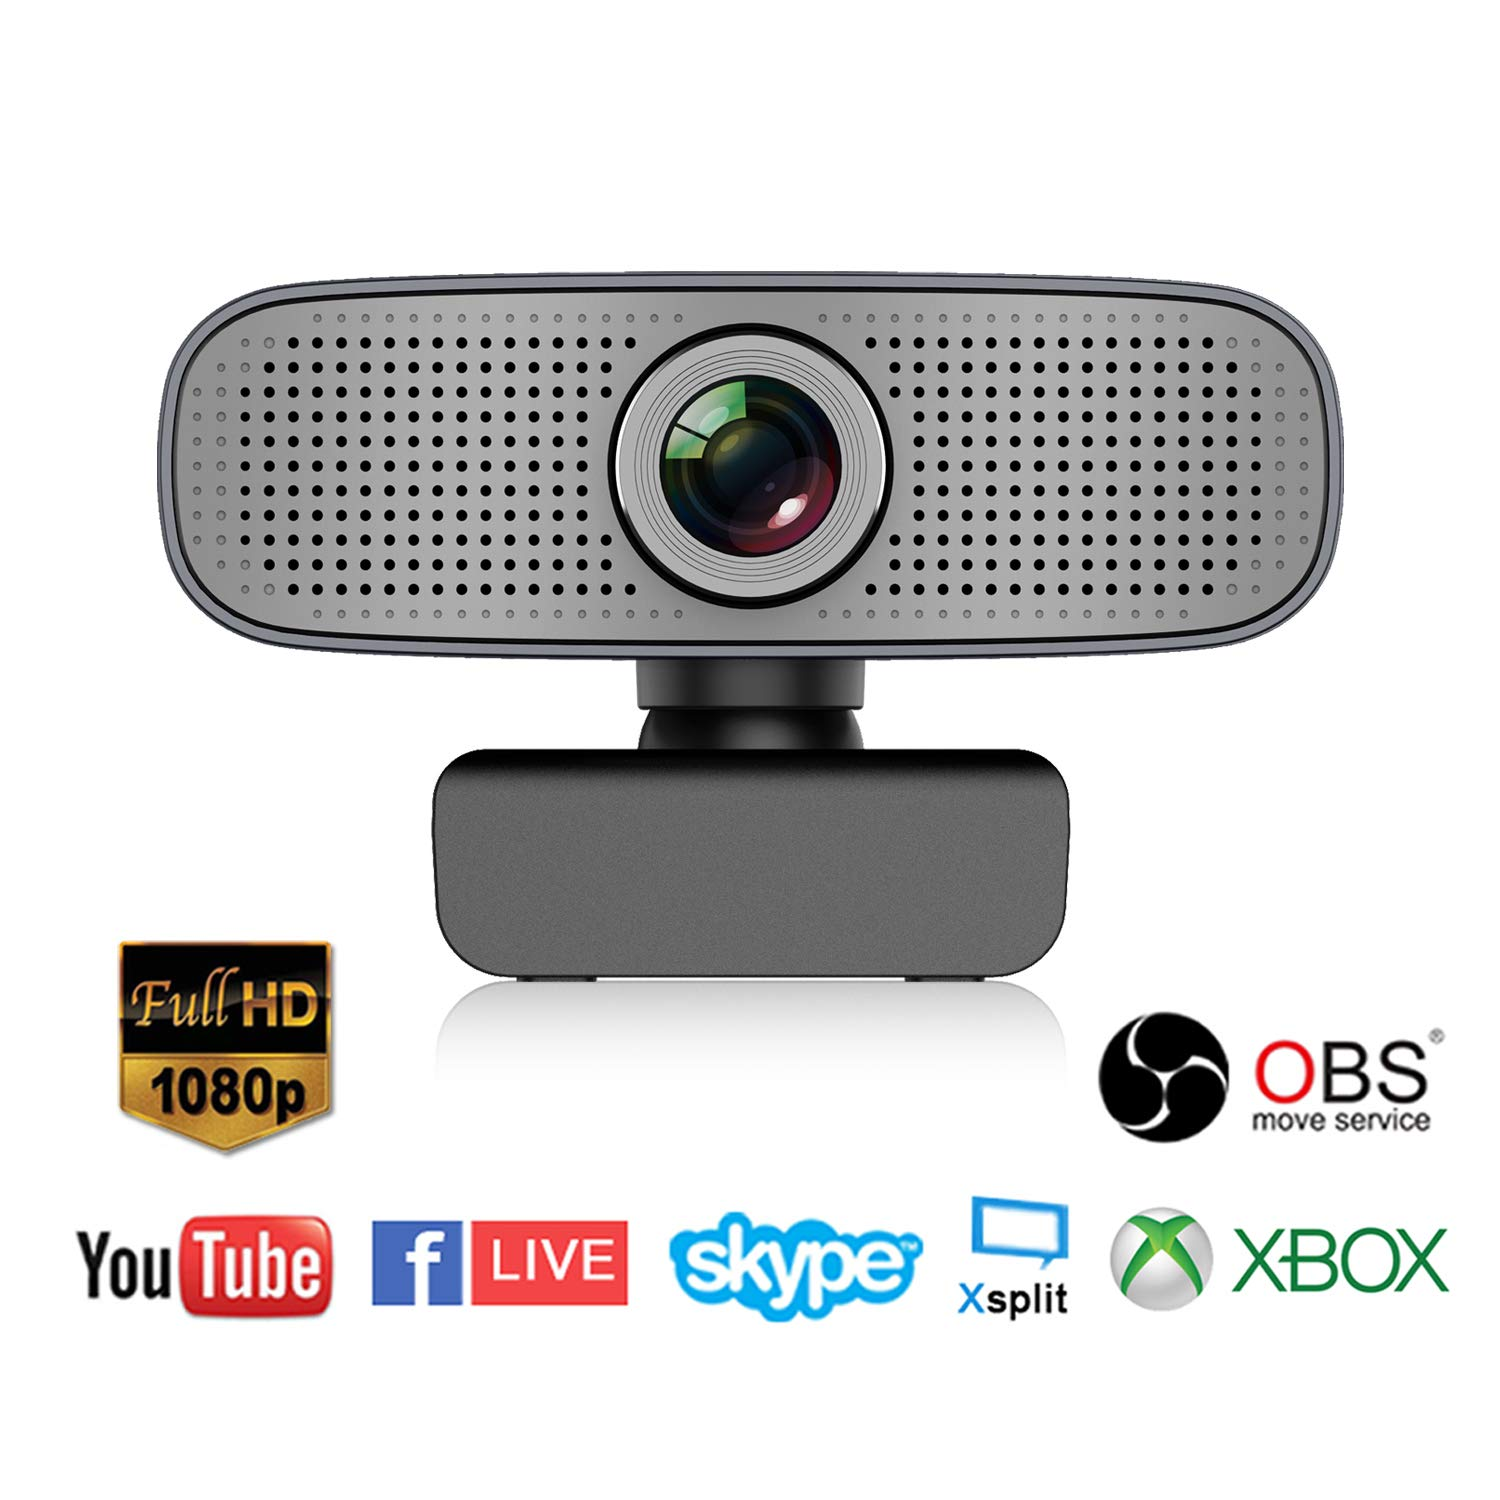 Spedal Full HD Webcam 1080p, Beauty Live Streaming Webcam, Computer Laptop Camera for OBS Xbox XSplit Skype Facebook, Compatible for Mac OS Windows 10/8/7